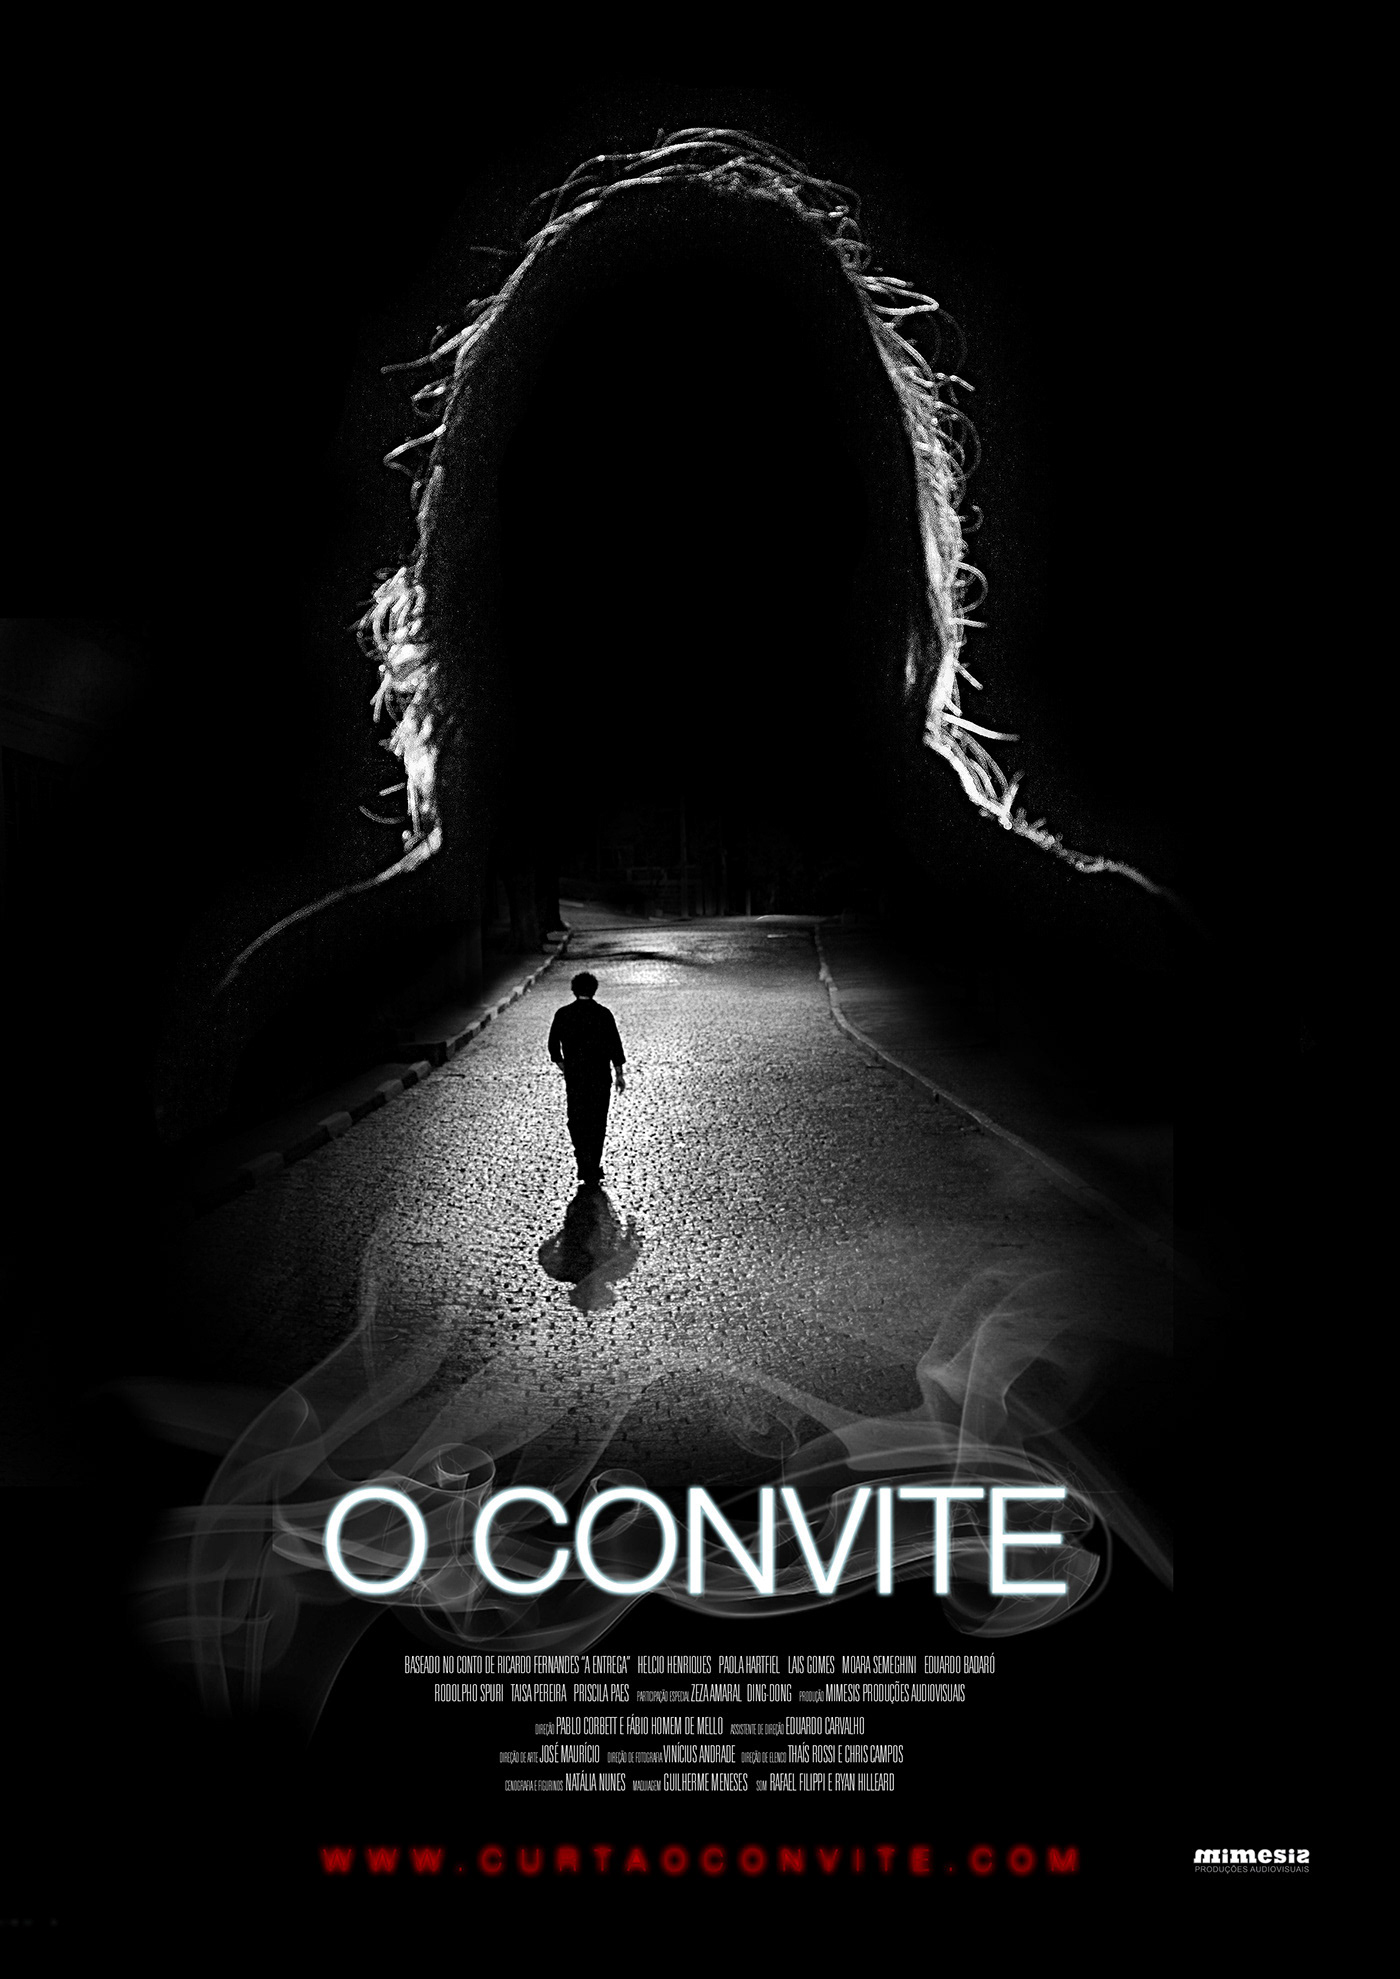 O Convite The Invitation